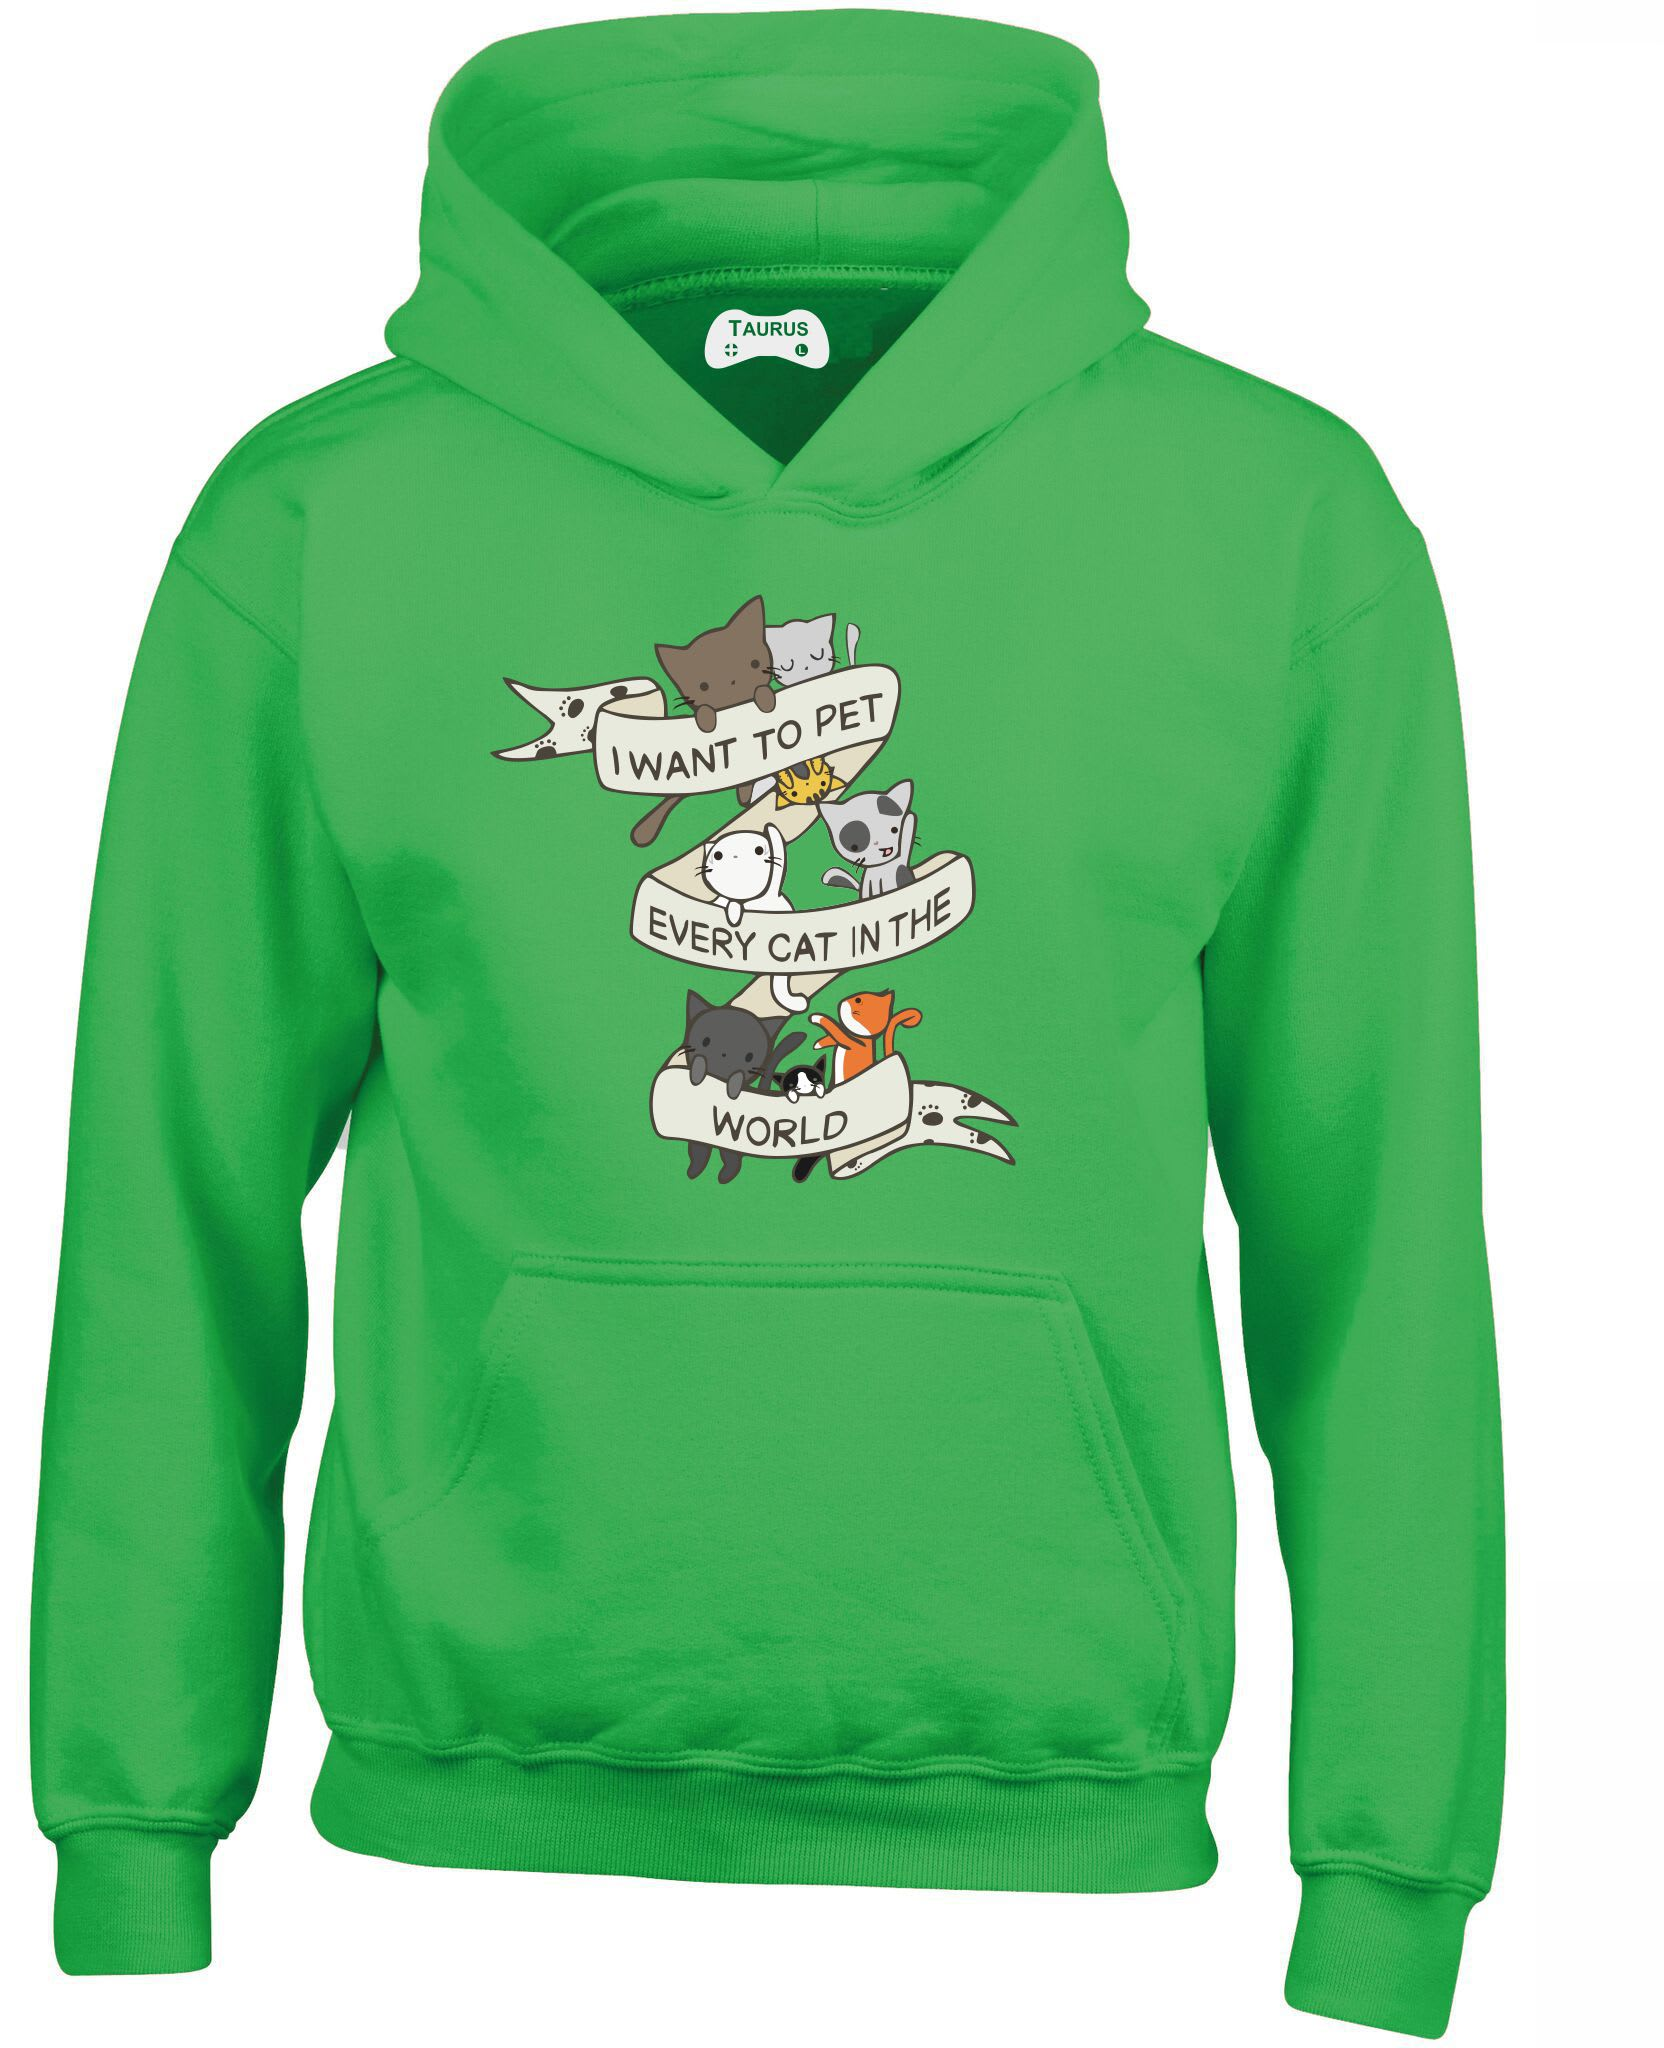 Pet Every Cat Kids Hoodie